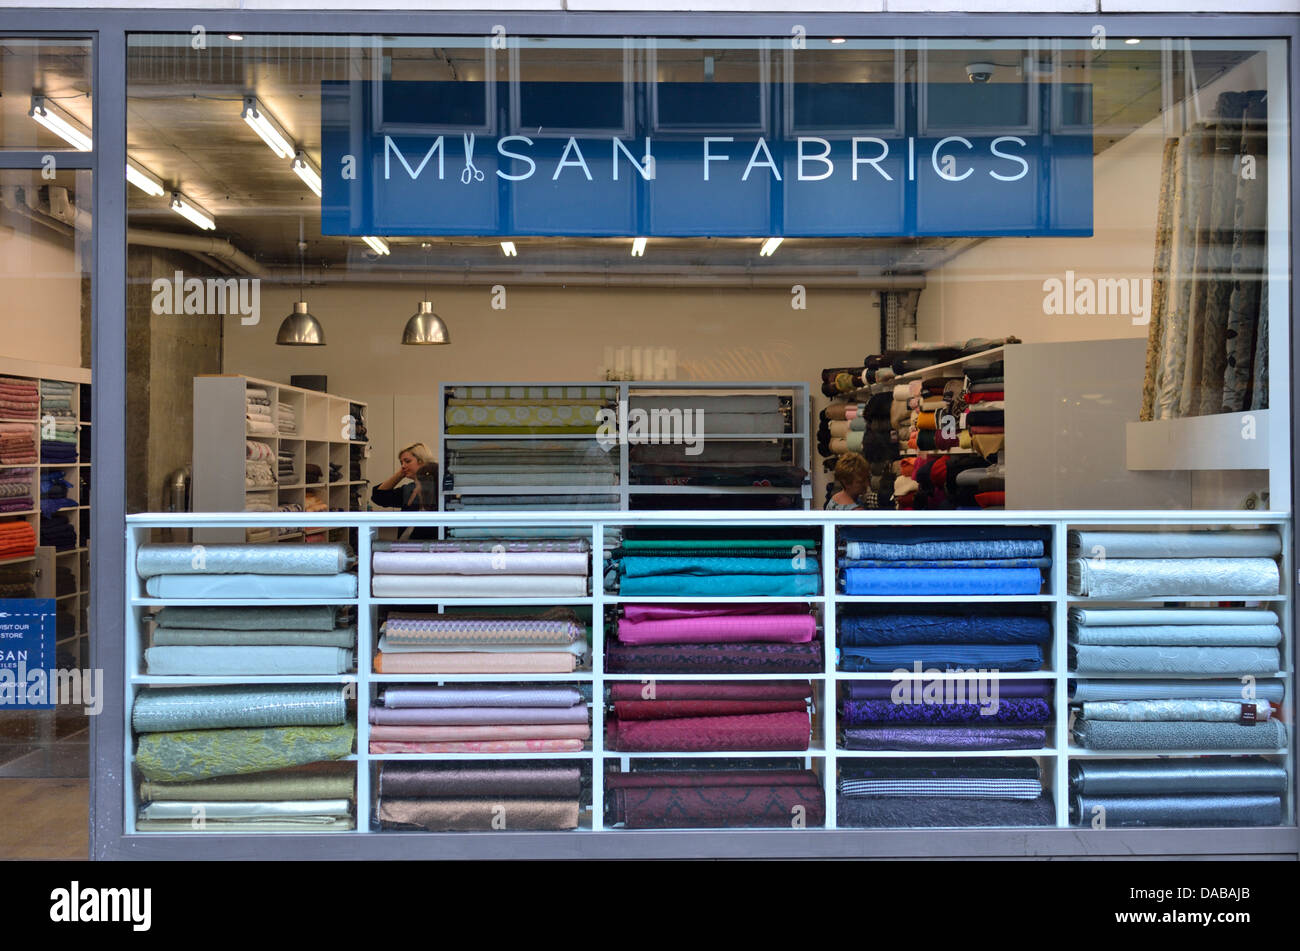 misan fabrics fabric shop in berwick street soho london uk stock photo 58027491 alamy. Black Bedroom Furniture Sets. Home Design Ideas